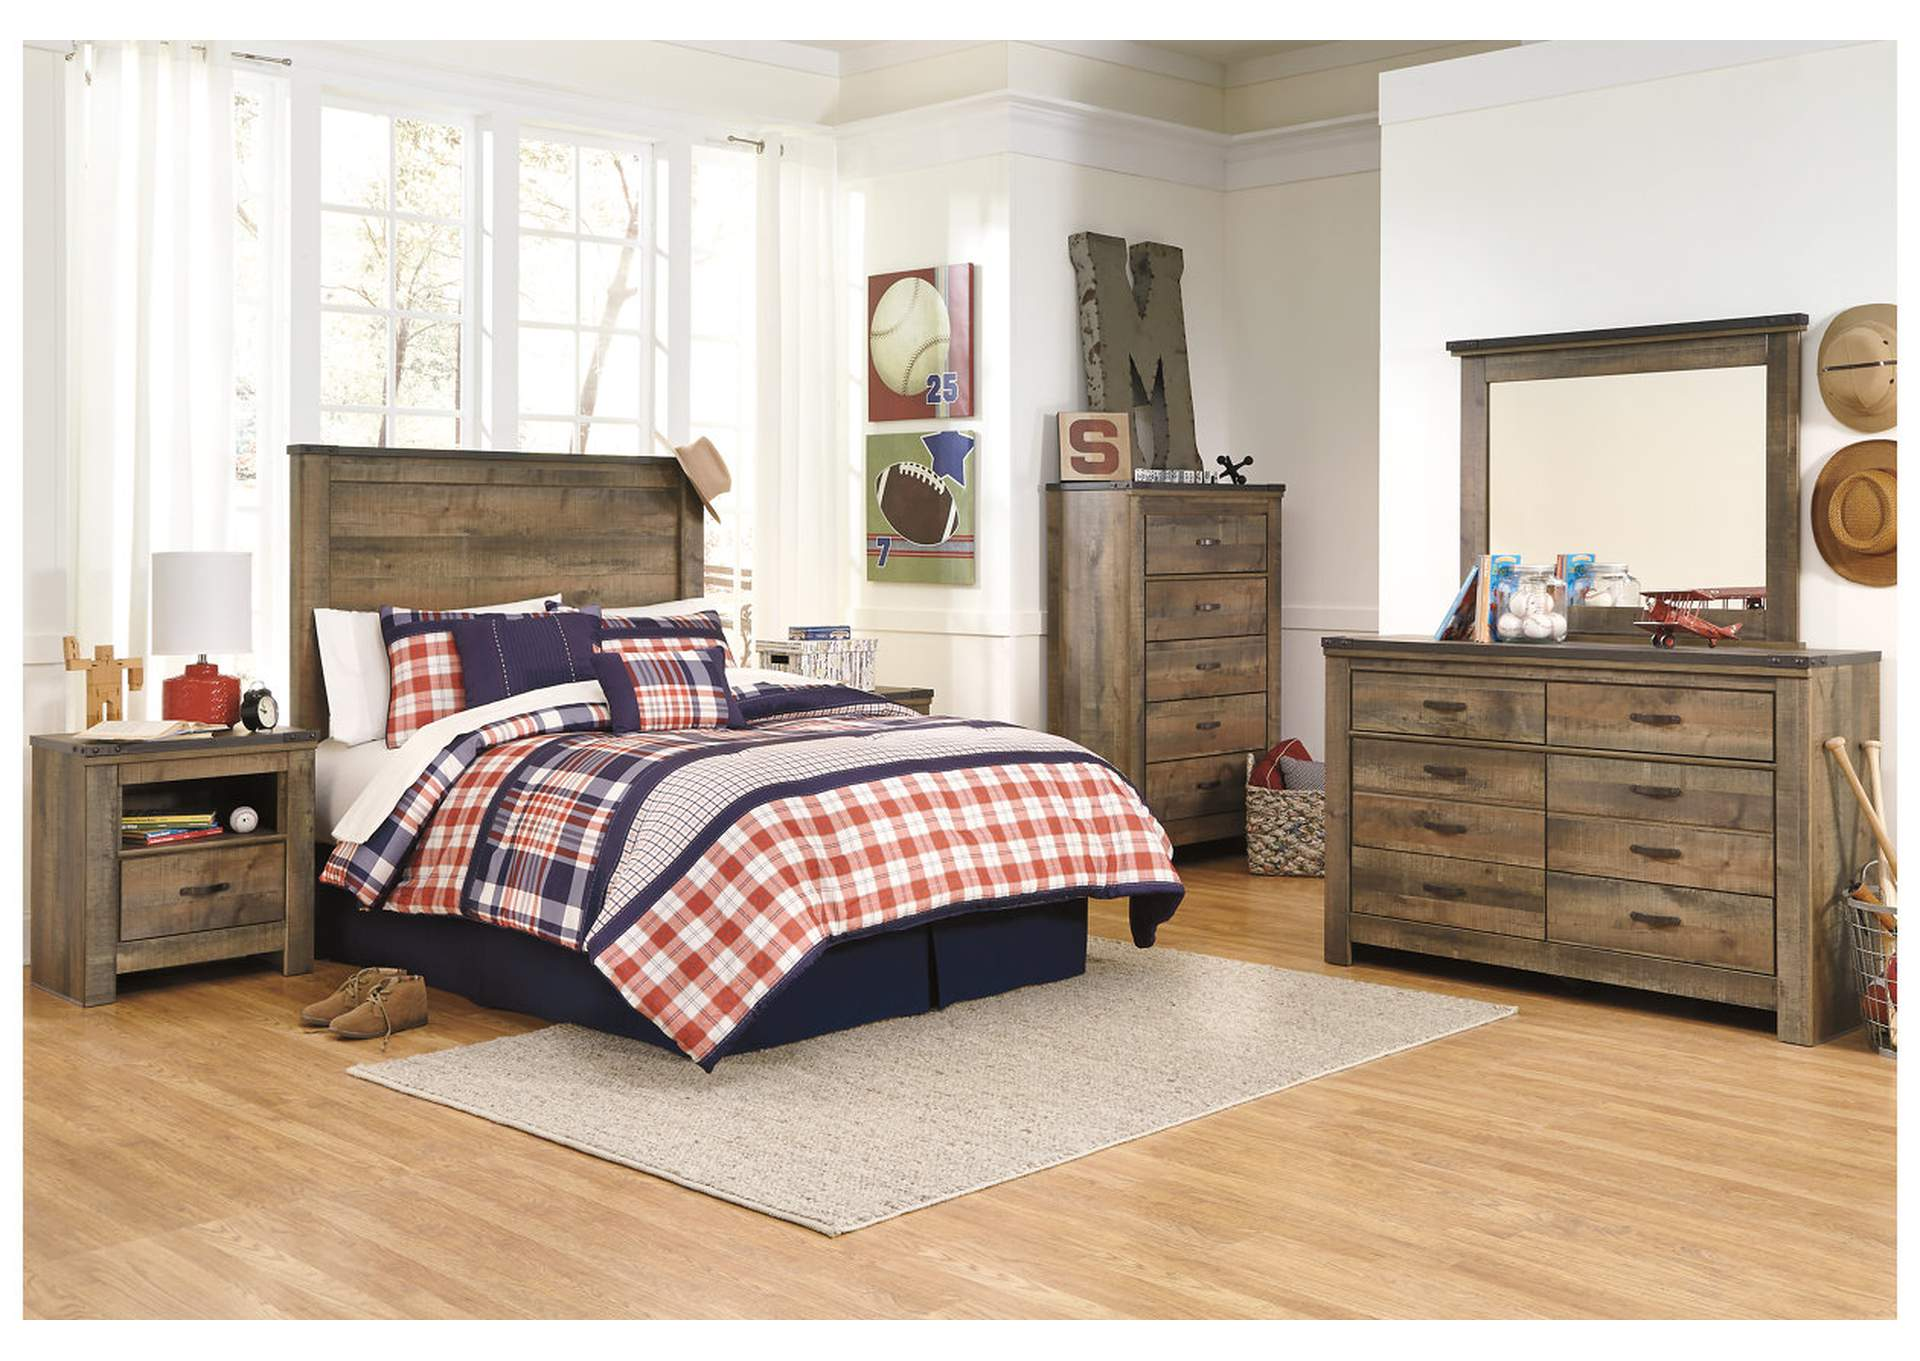 Trinell Brown Twin Panel Headboard w/Dresser, Mirror & Drawer Chest,Signature Design By Ashley